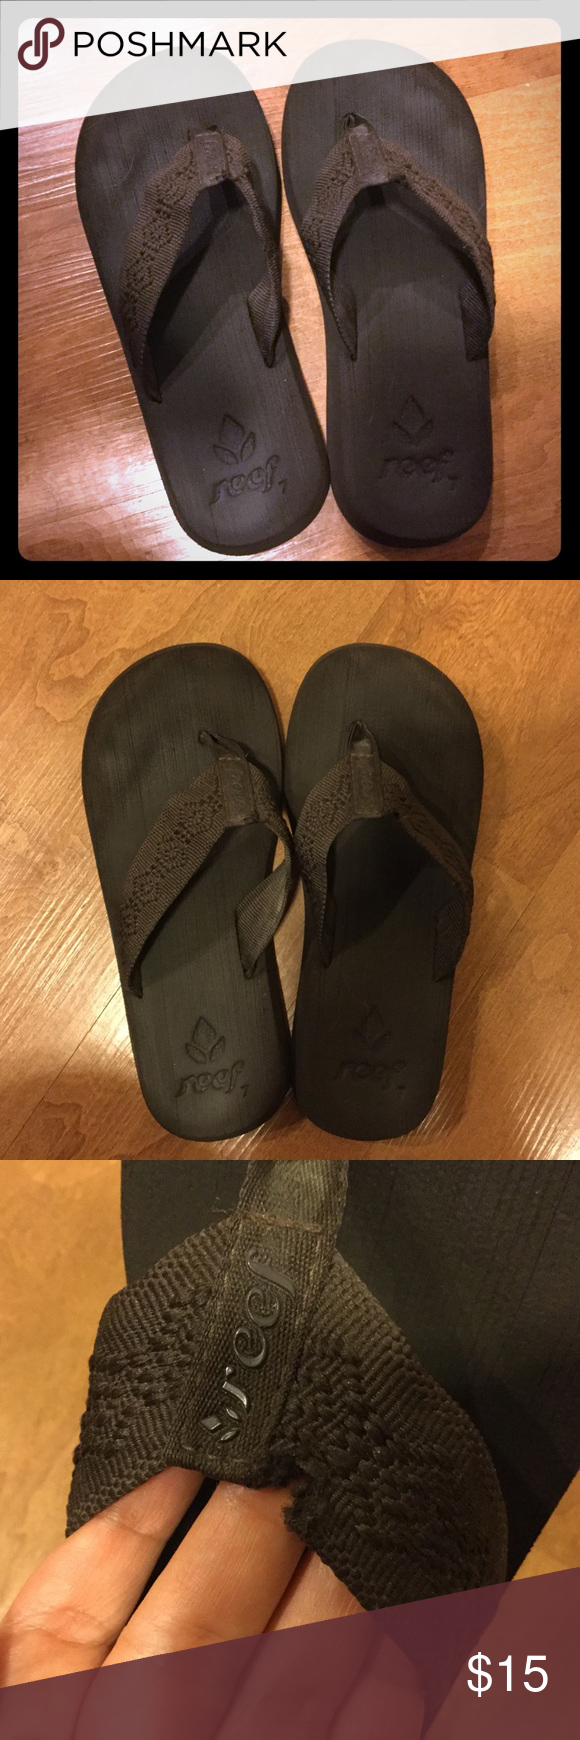 e18896a0824e Reef flip flops Reef flip flops slippers sandals size 7 in dark brown. Very  comfortable and in good condition. Small rip on front right by big toe area  as ...